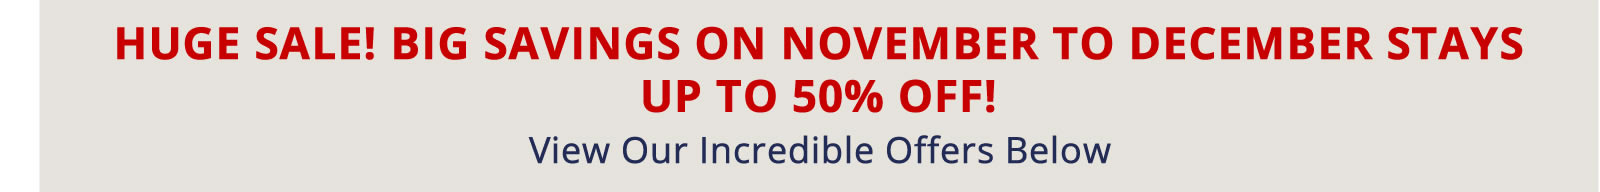 Book Now for Big Savings on November to December Stays. Up to 50% off!